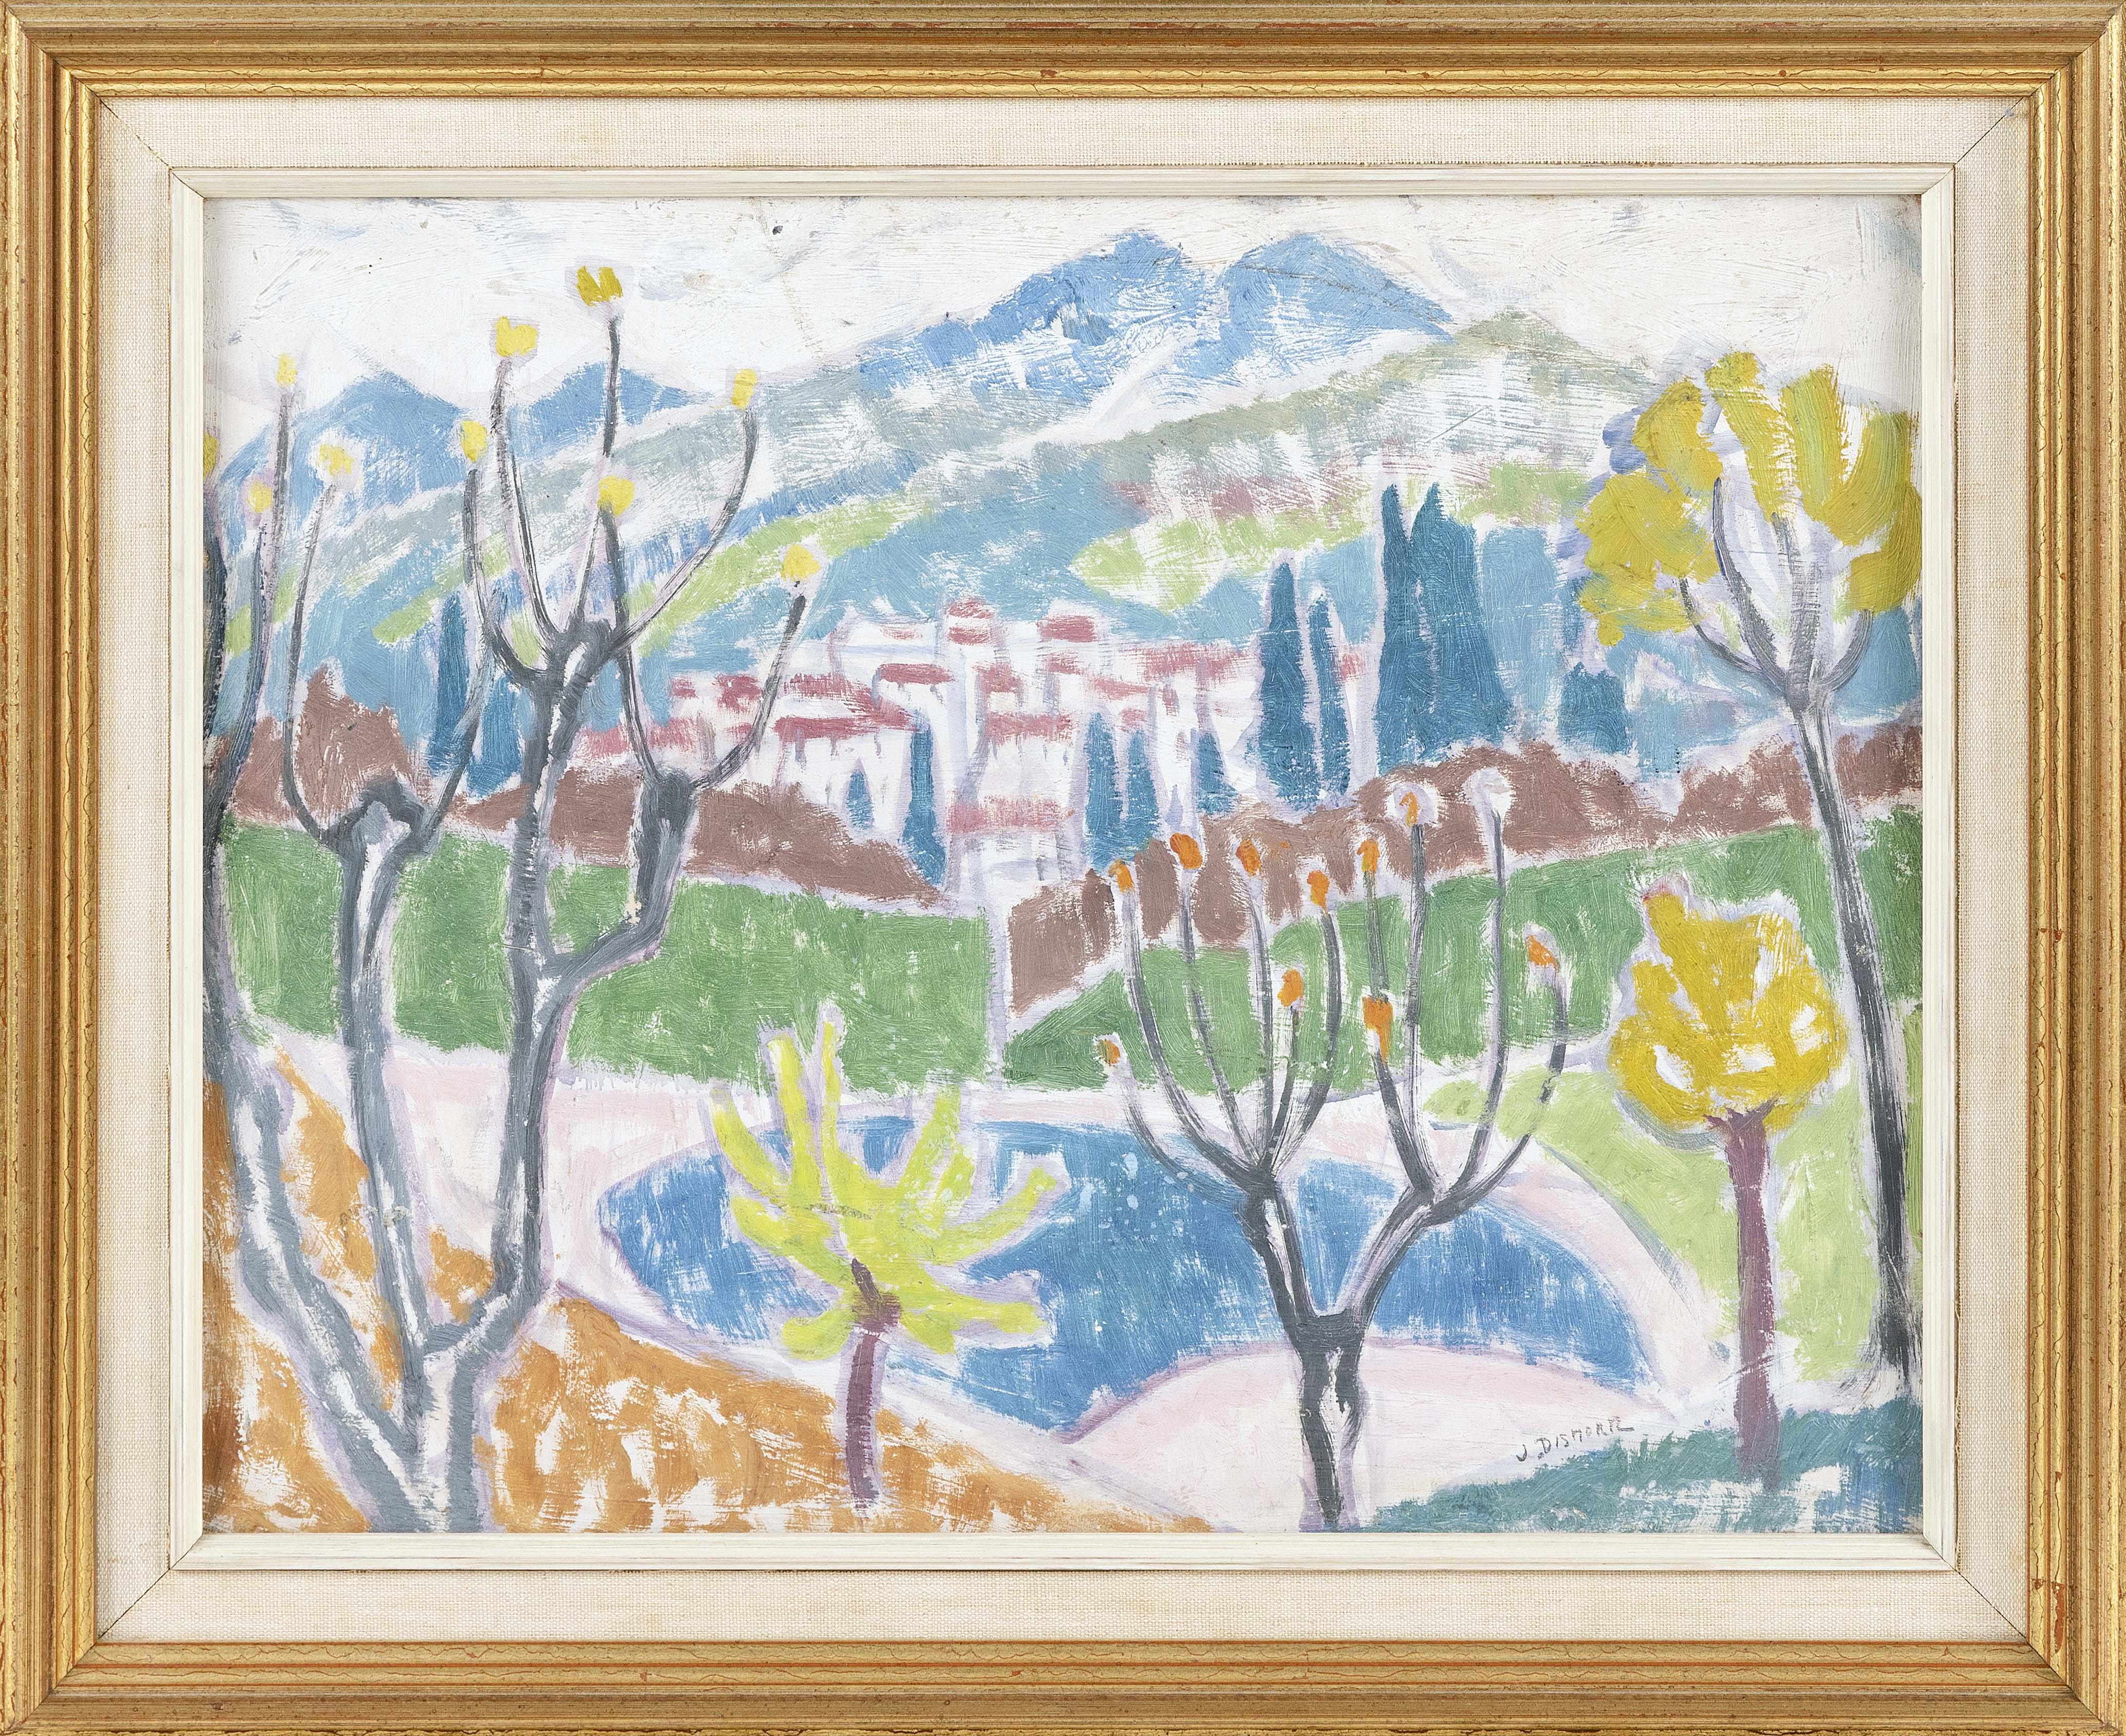 """JESSICA DISMORR (England, 1885-1939), """"In the Alpes Maritimes, France"""", Oil on board. 12.5"""" x 16"""". Framed, 16"""" x 19.5""""."""